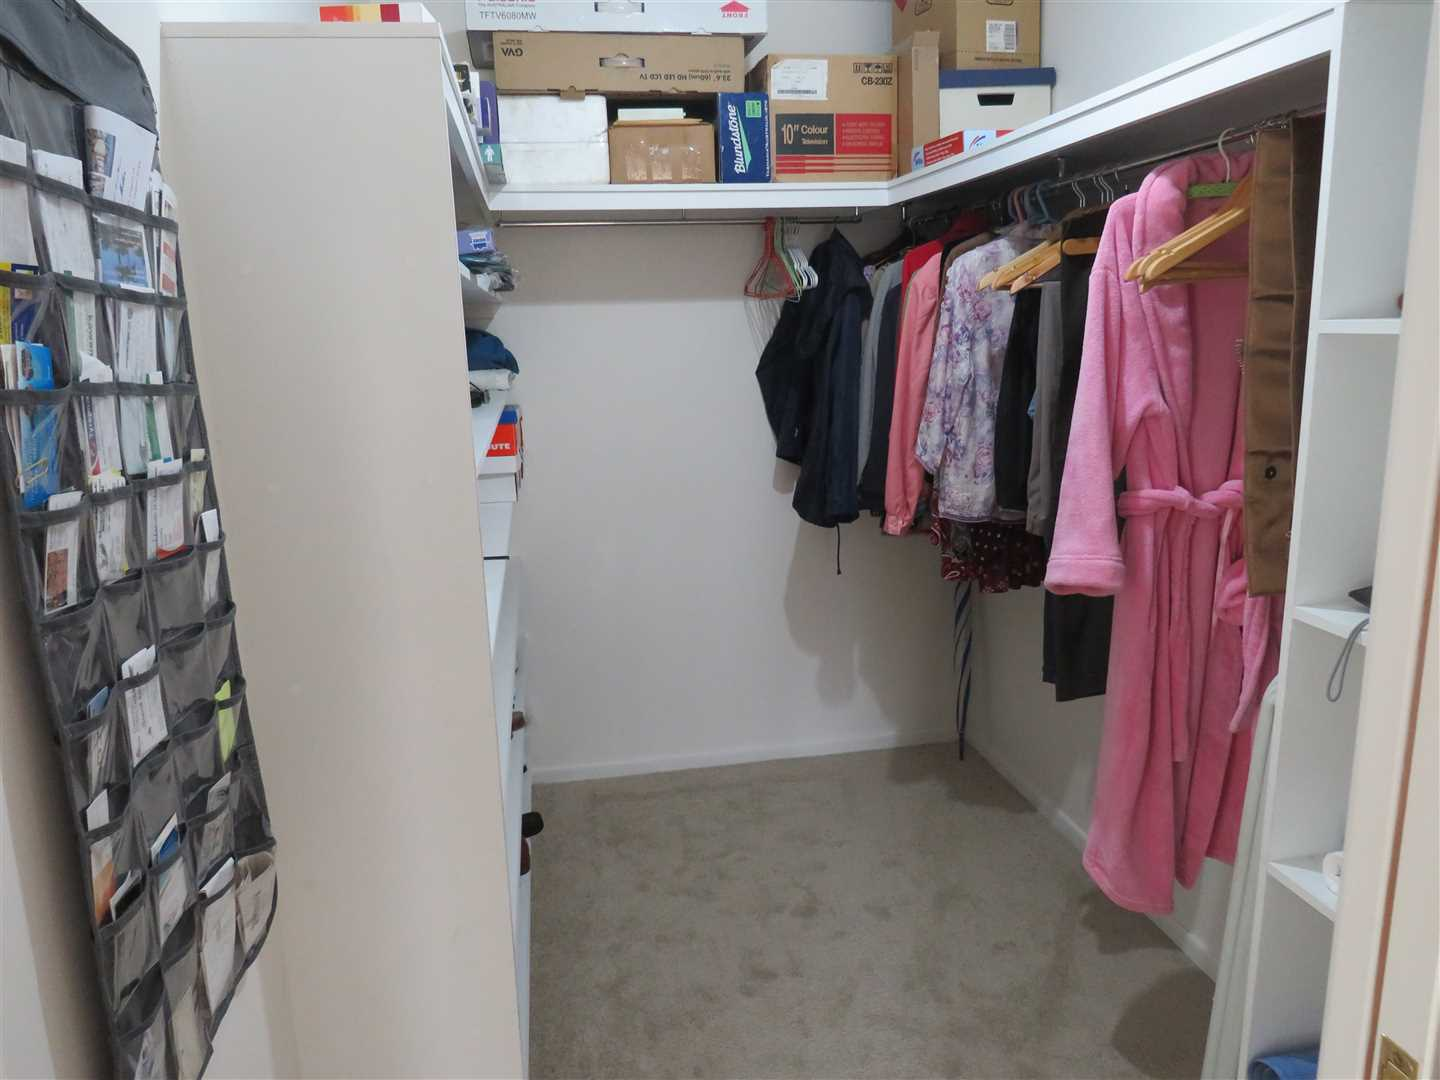 shelving and hanging space